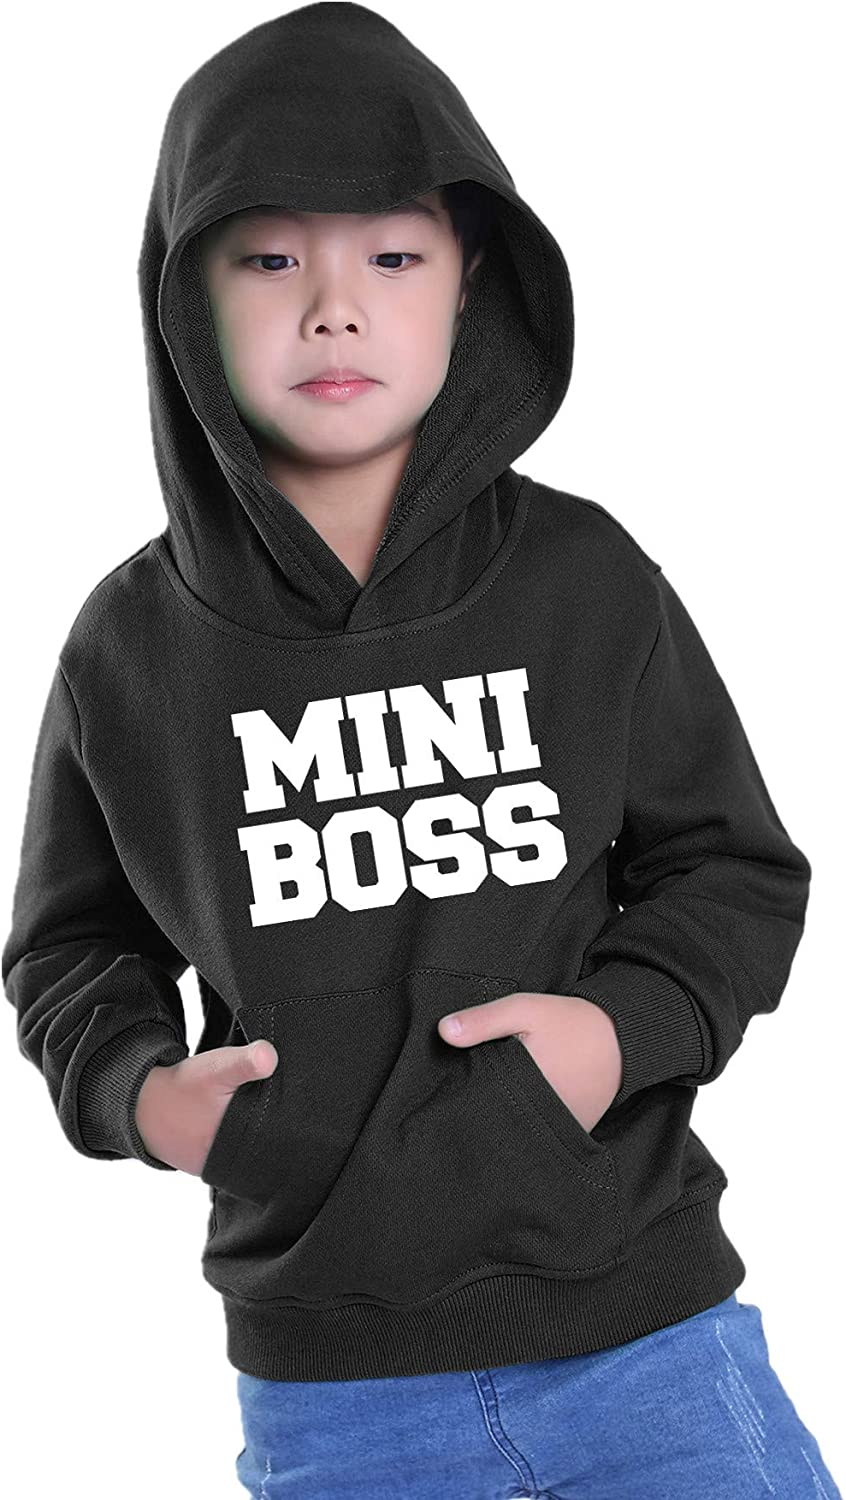 PINJIA 0-6T Mini Boss Hoodie Toddler Long Sleeve Pullover Sweatshirt with Pocket for Baby Boy Girl HMAX01